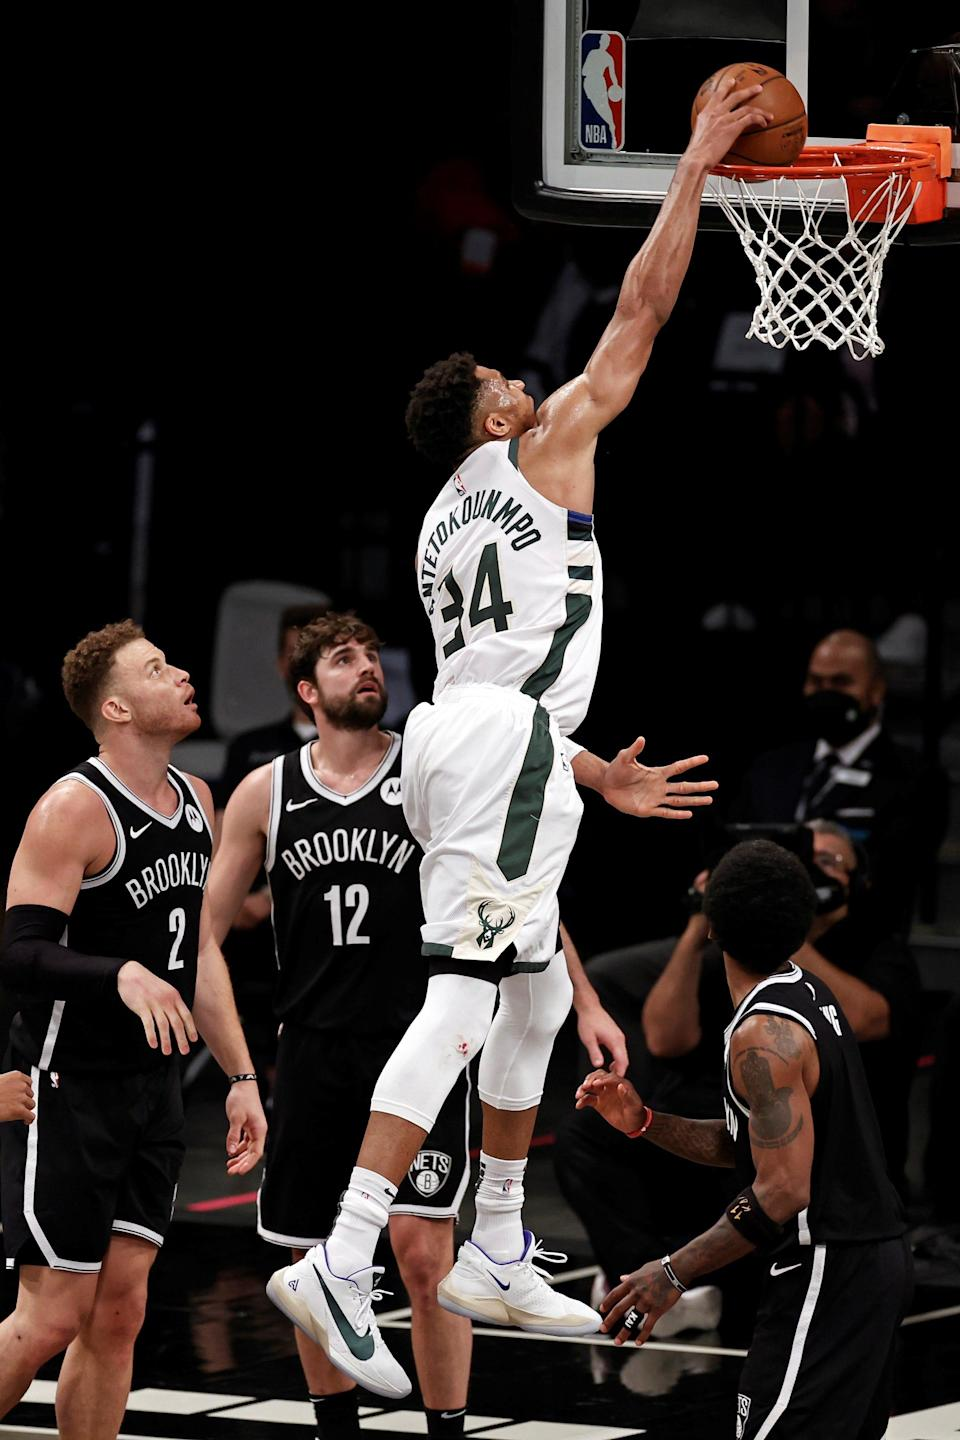 Milwaukee Bucks forward Giannis Antetokounmpo (34) dunks the ball over Brooklyn Nets forward Joe Harris (12) during the second half of Game 1 of an NBA basketball second-round playoff series Saturday, June 5, 2021, in New York. (AP Photo/Adam Hunger) ORG XMIT: NYOTK